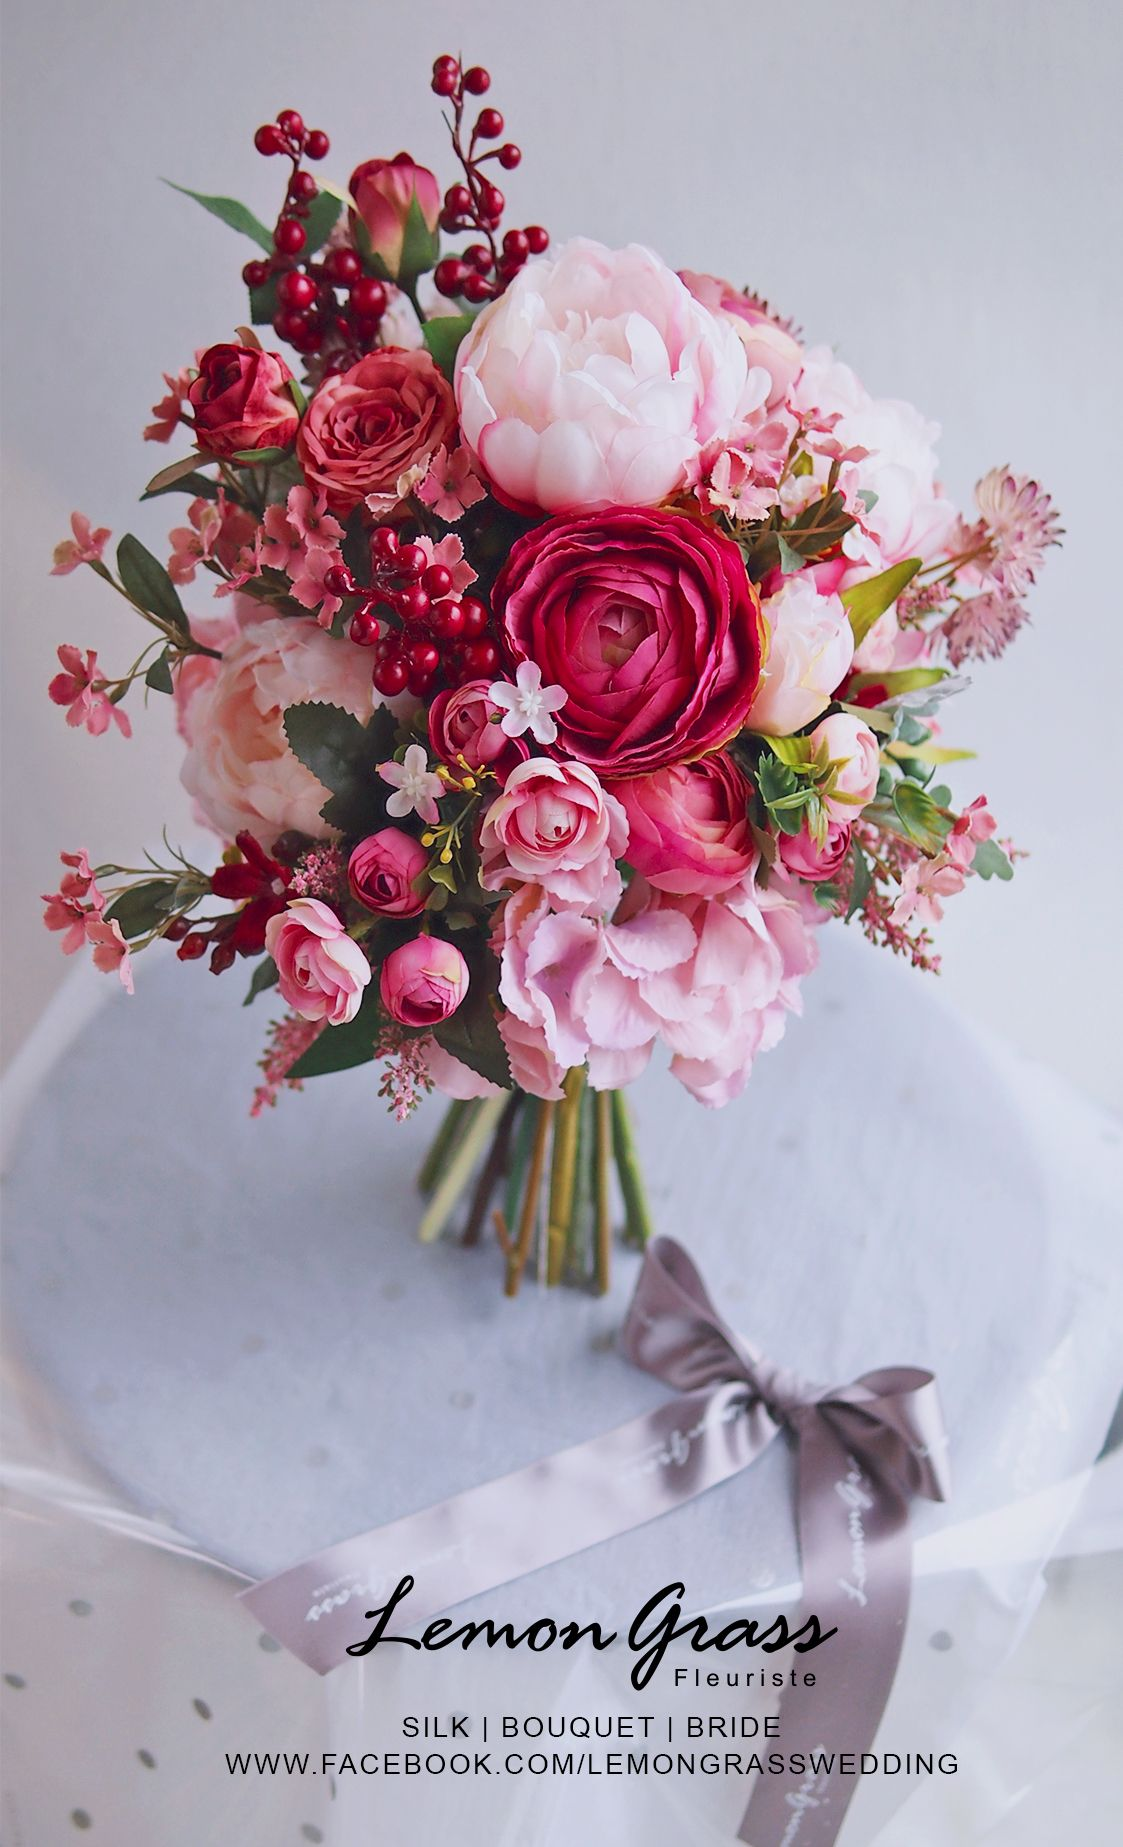 Lillies, roses, peonies oh my! We love this pink inspired